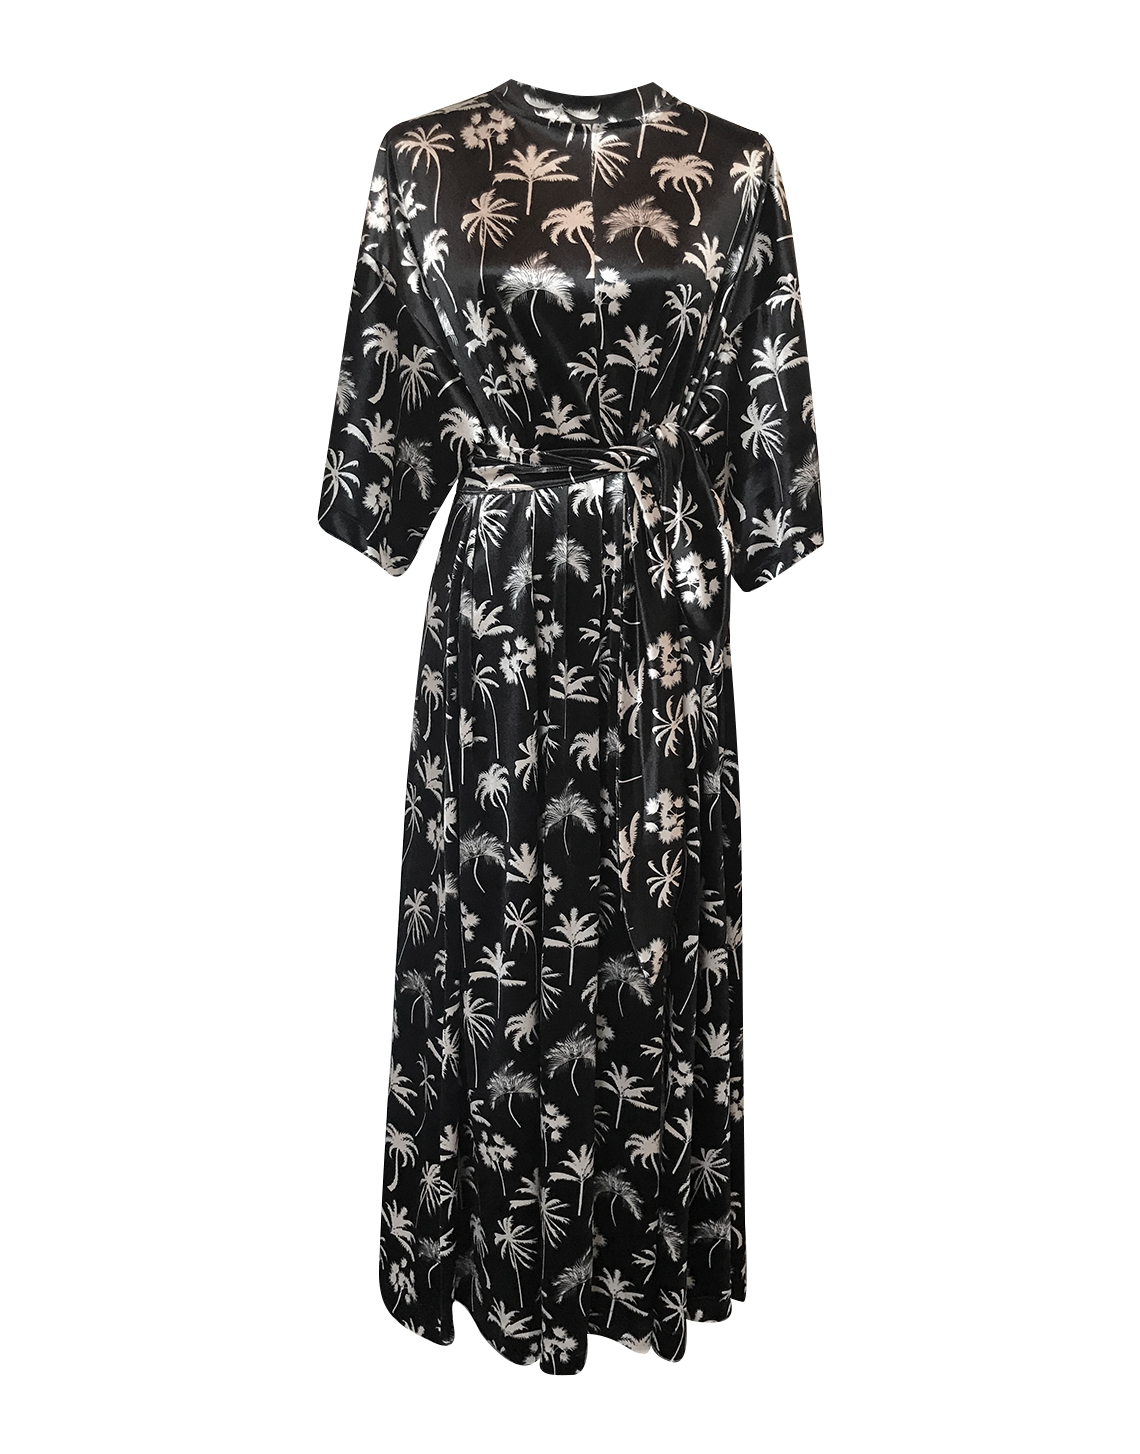 Catalina Dress - Palm Print by Jessica K on curated-crowd.com